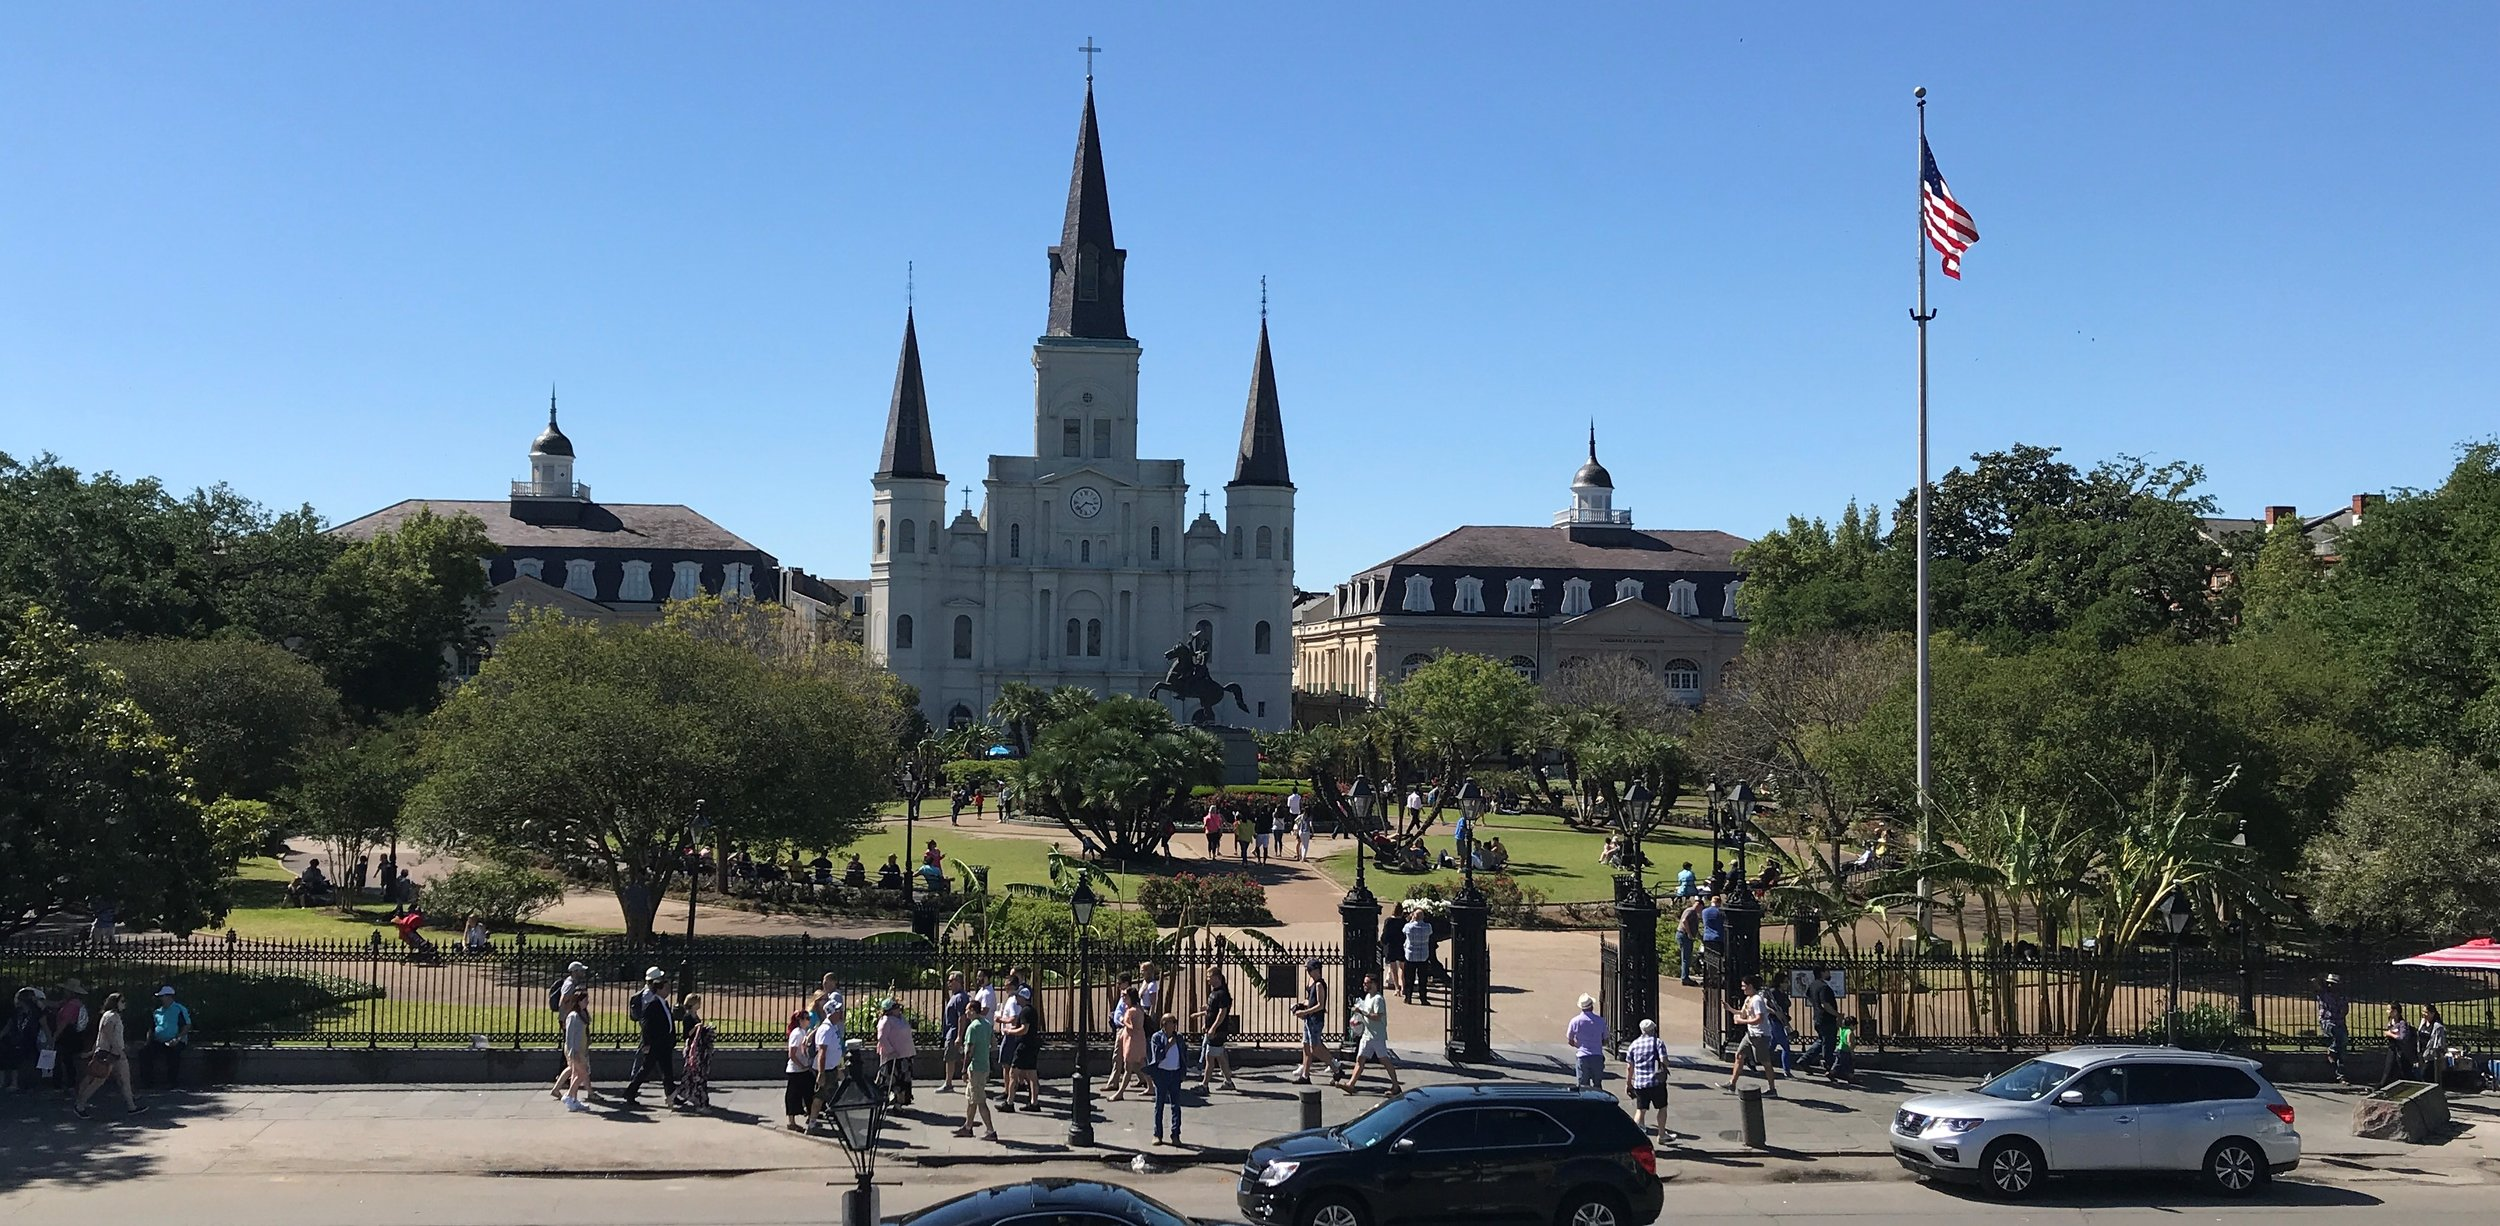 Near the Mississippi River looking back at Jackson Square and the St. Louis Cathedral